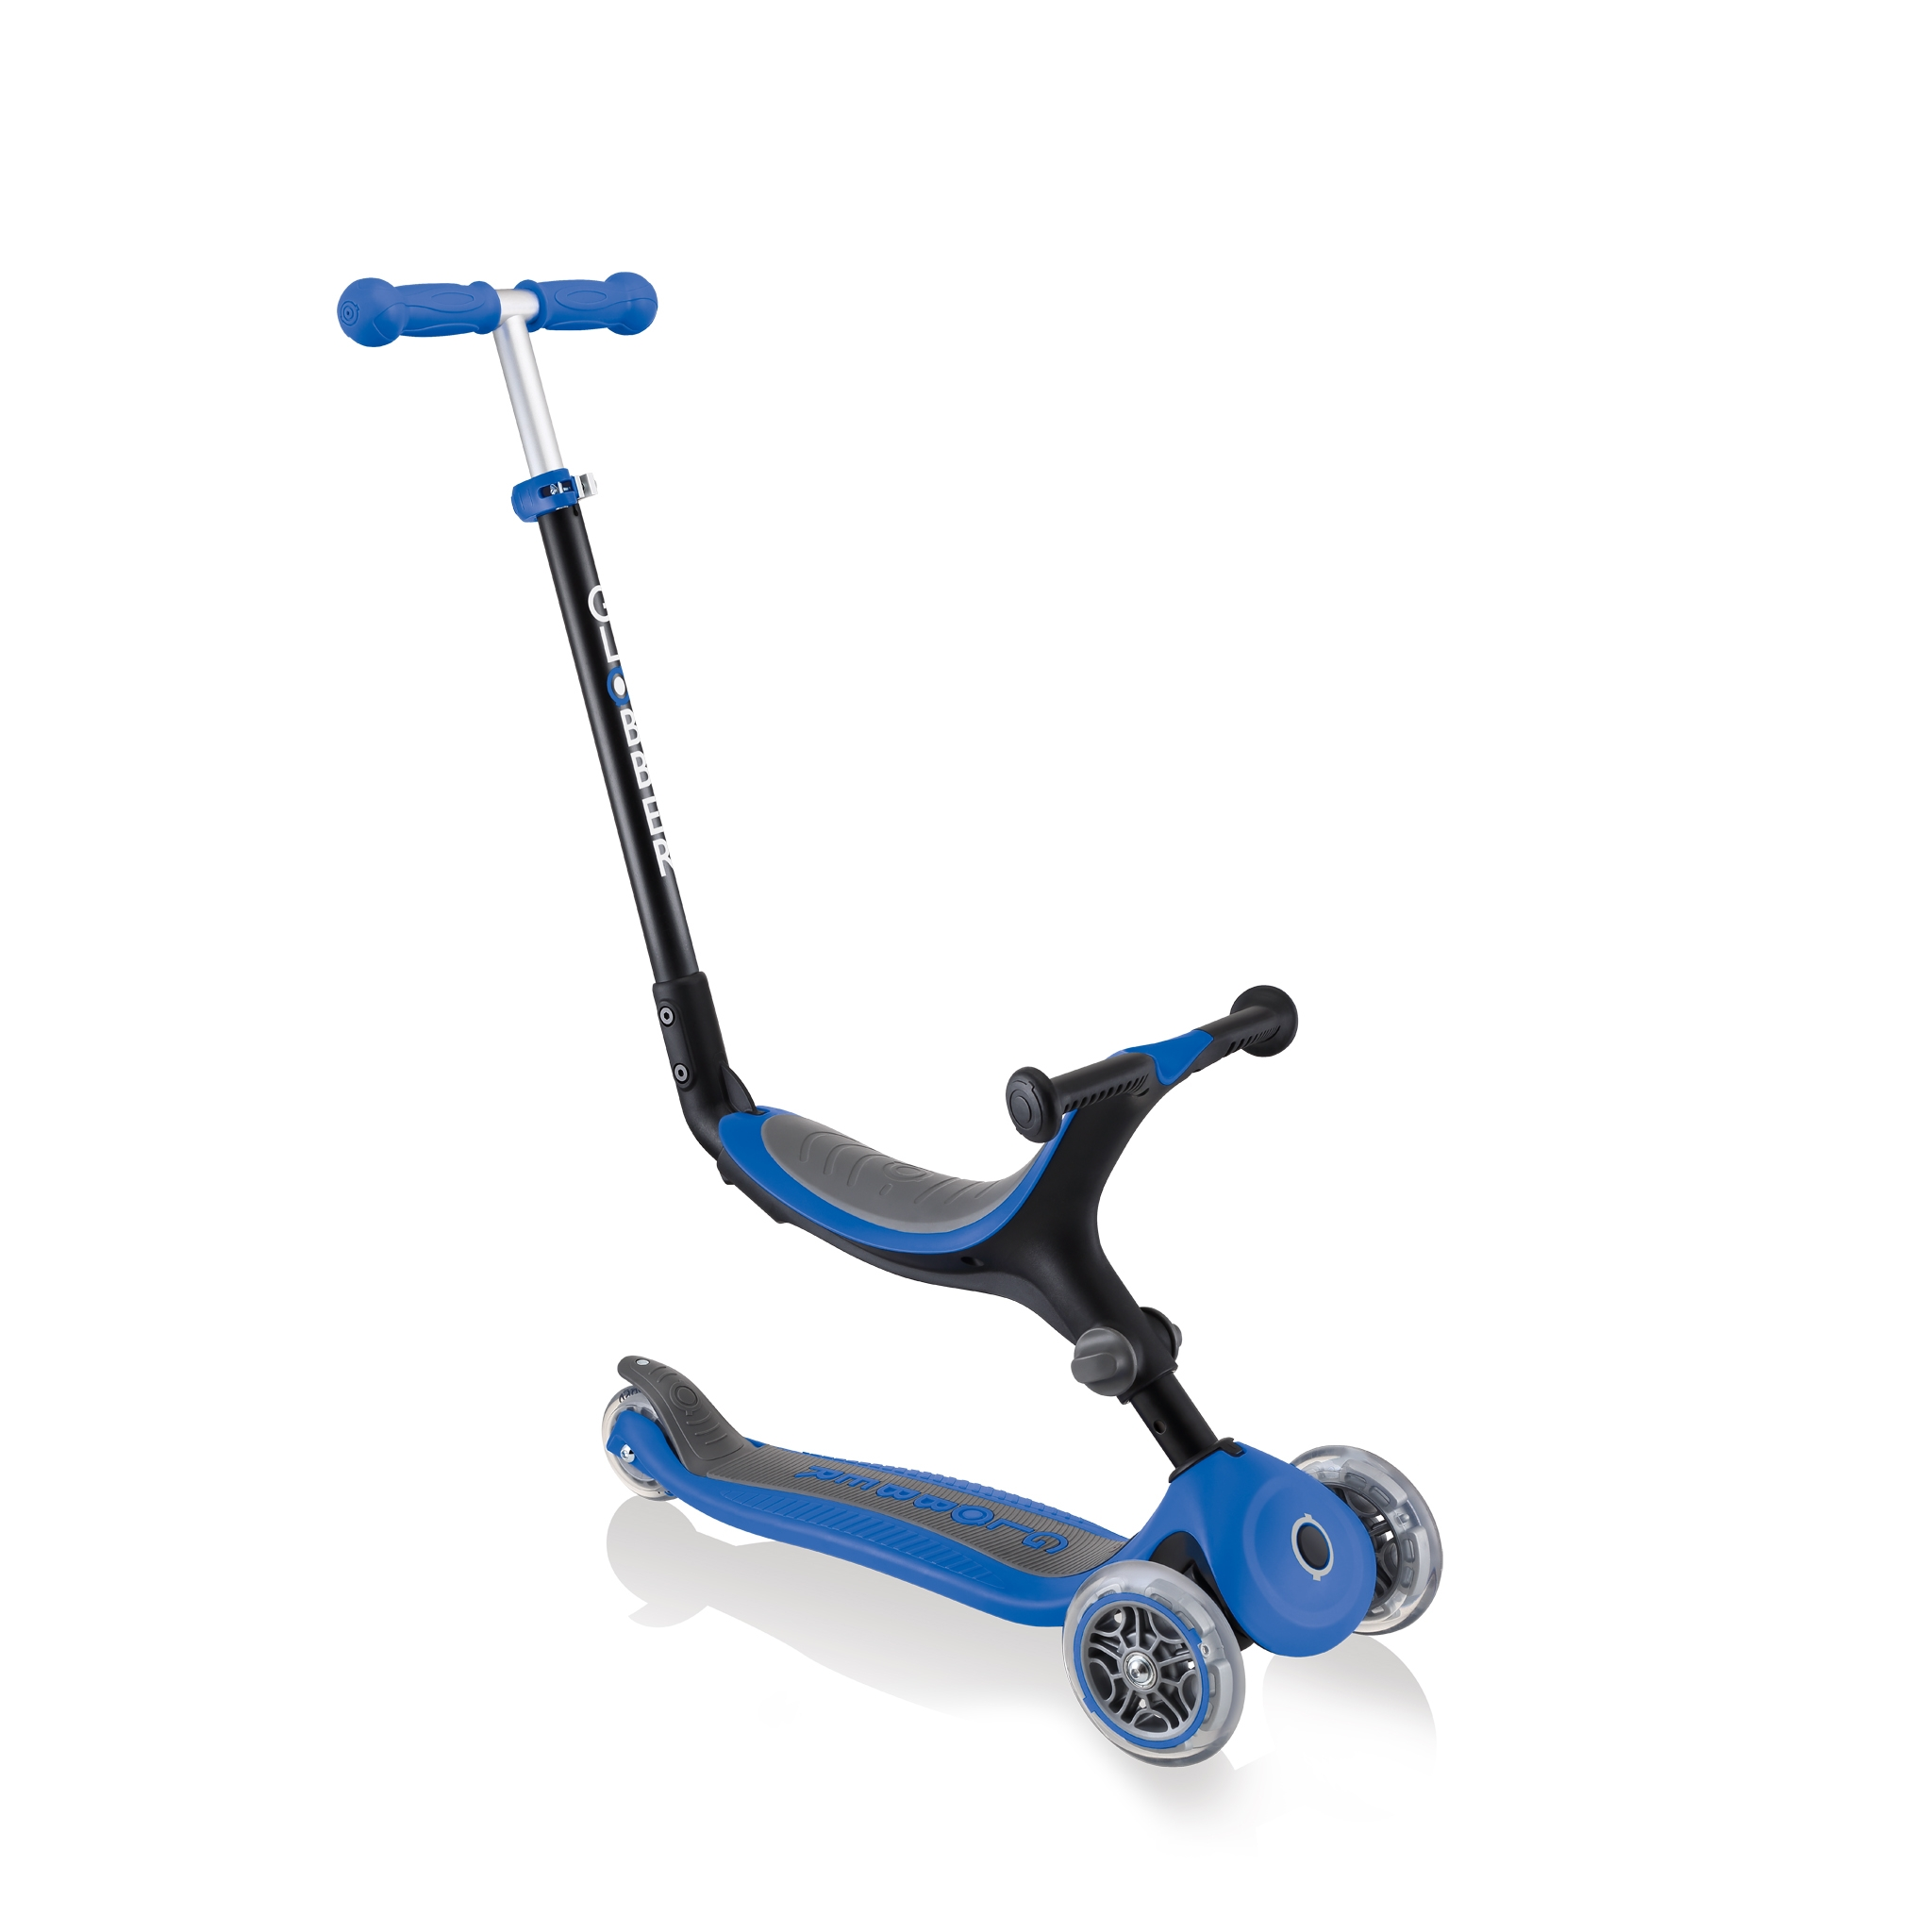 Globber-GO-UP-FOLDABLE-3-in-1-scooter-for-toddlers-ride-on-mode 0